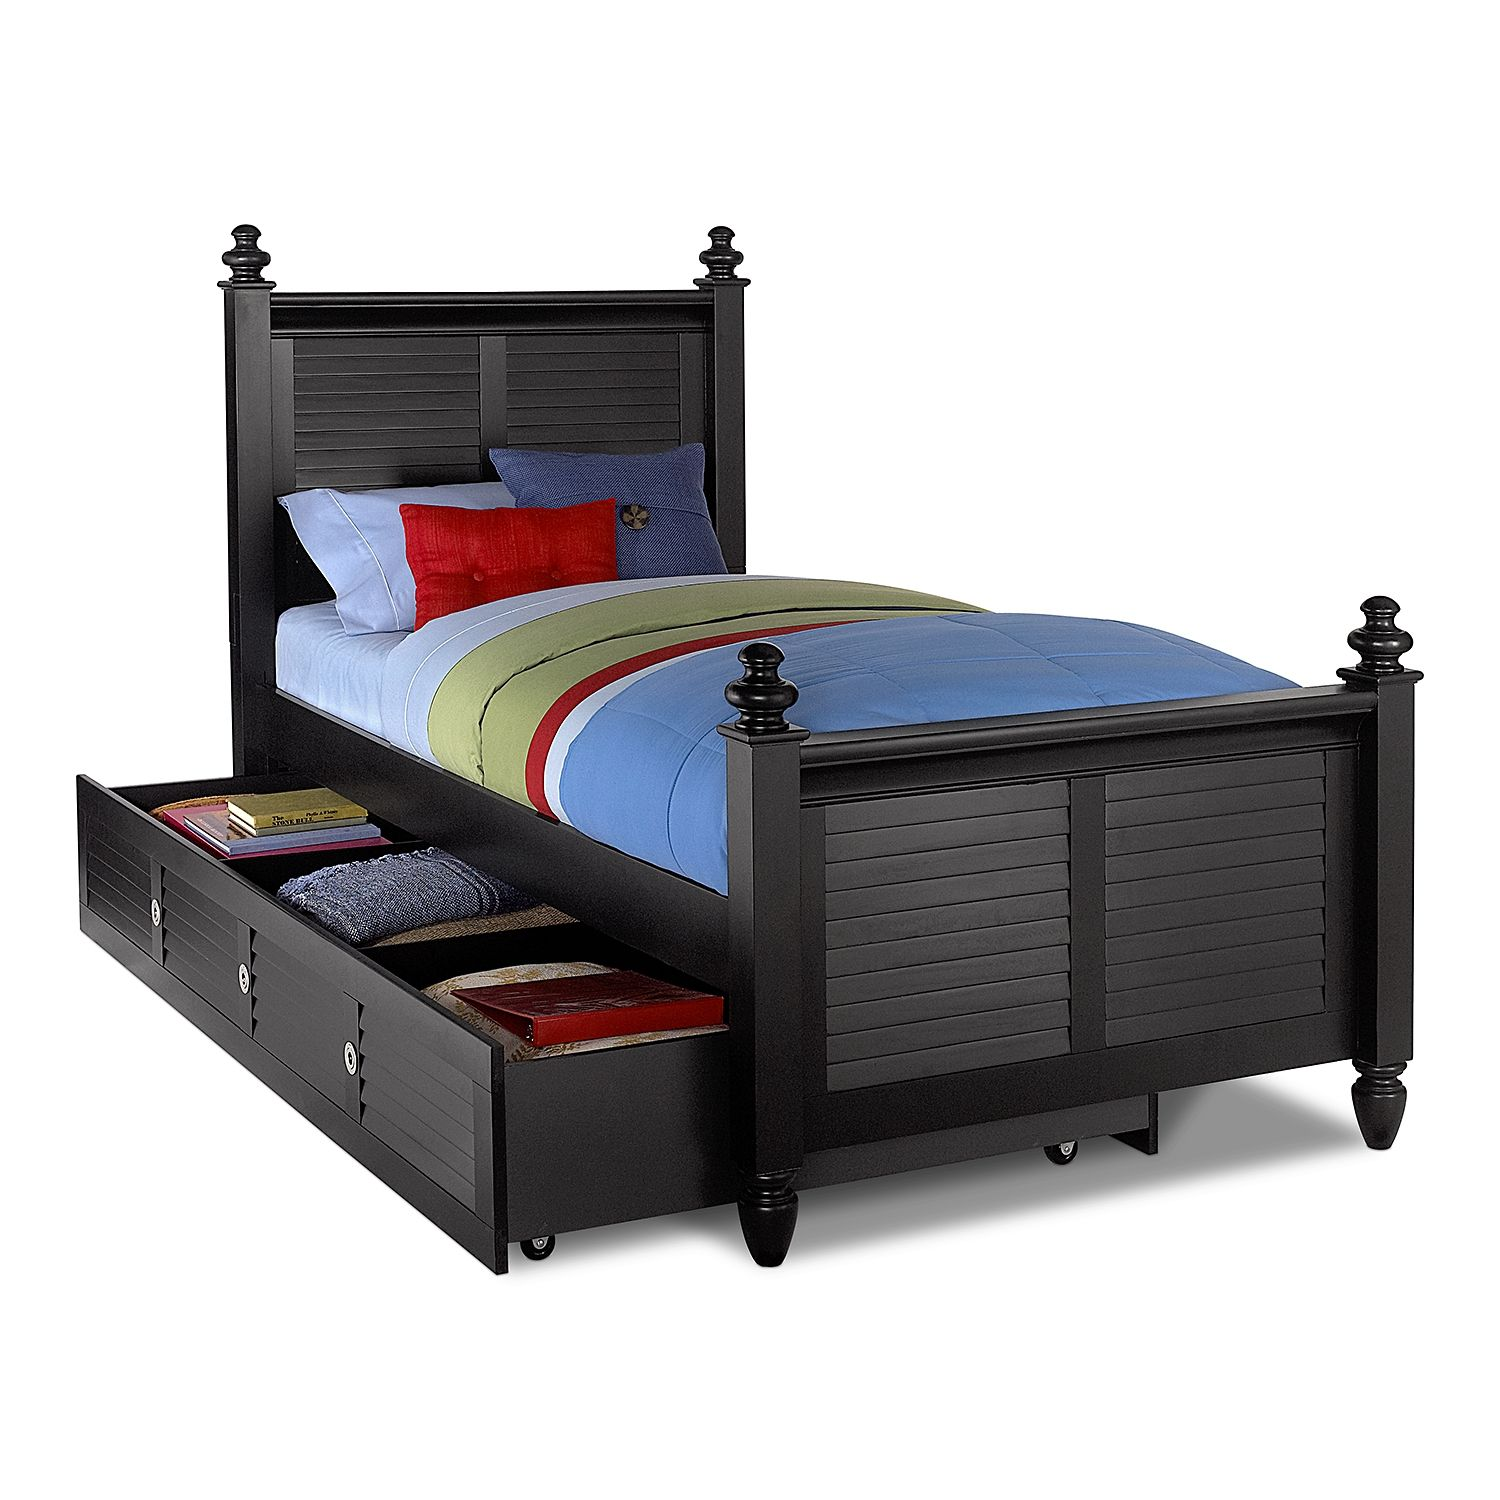 Kids Furniture - Seaside Black Twin Bed with Trundle | For the boys ...